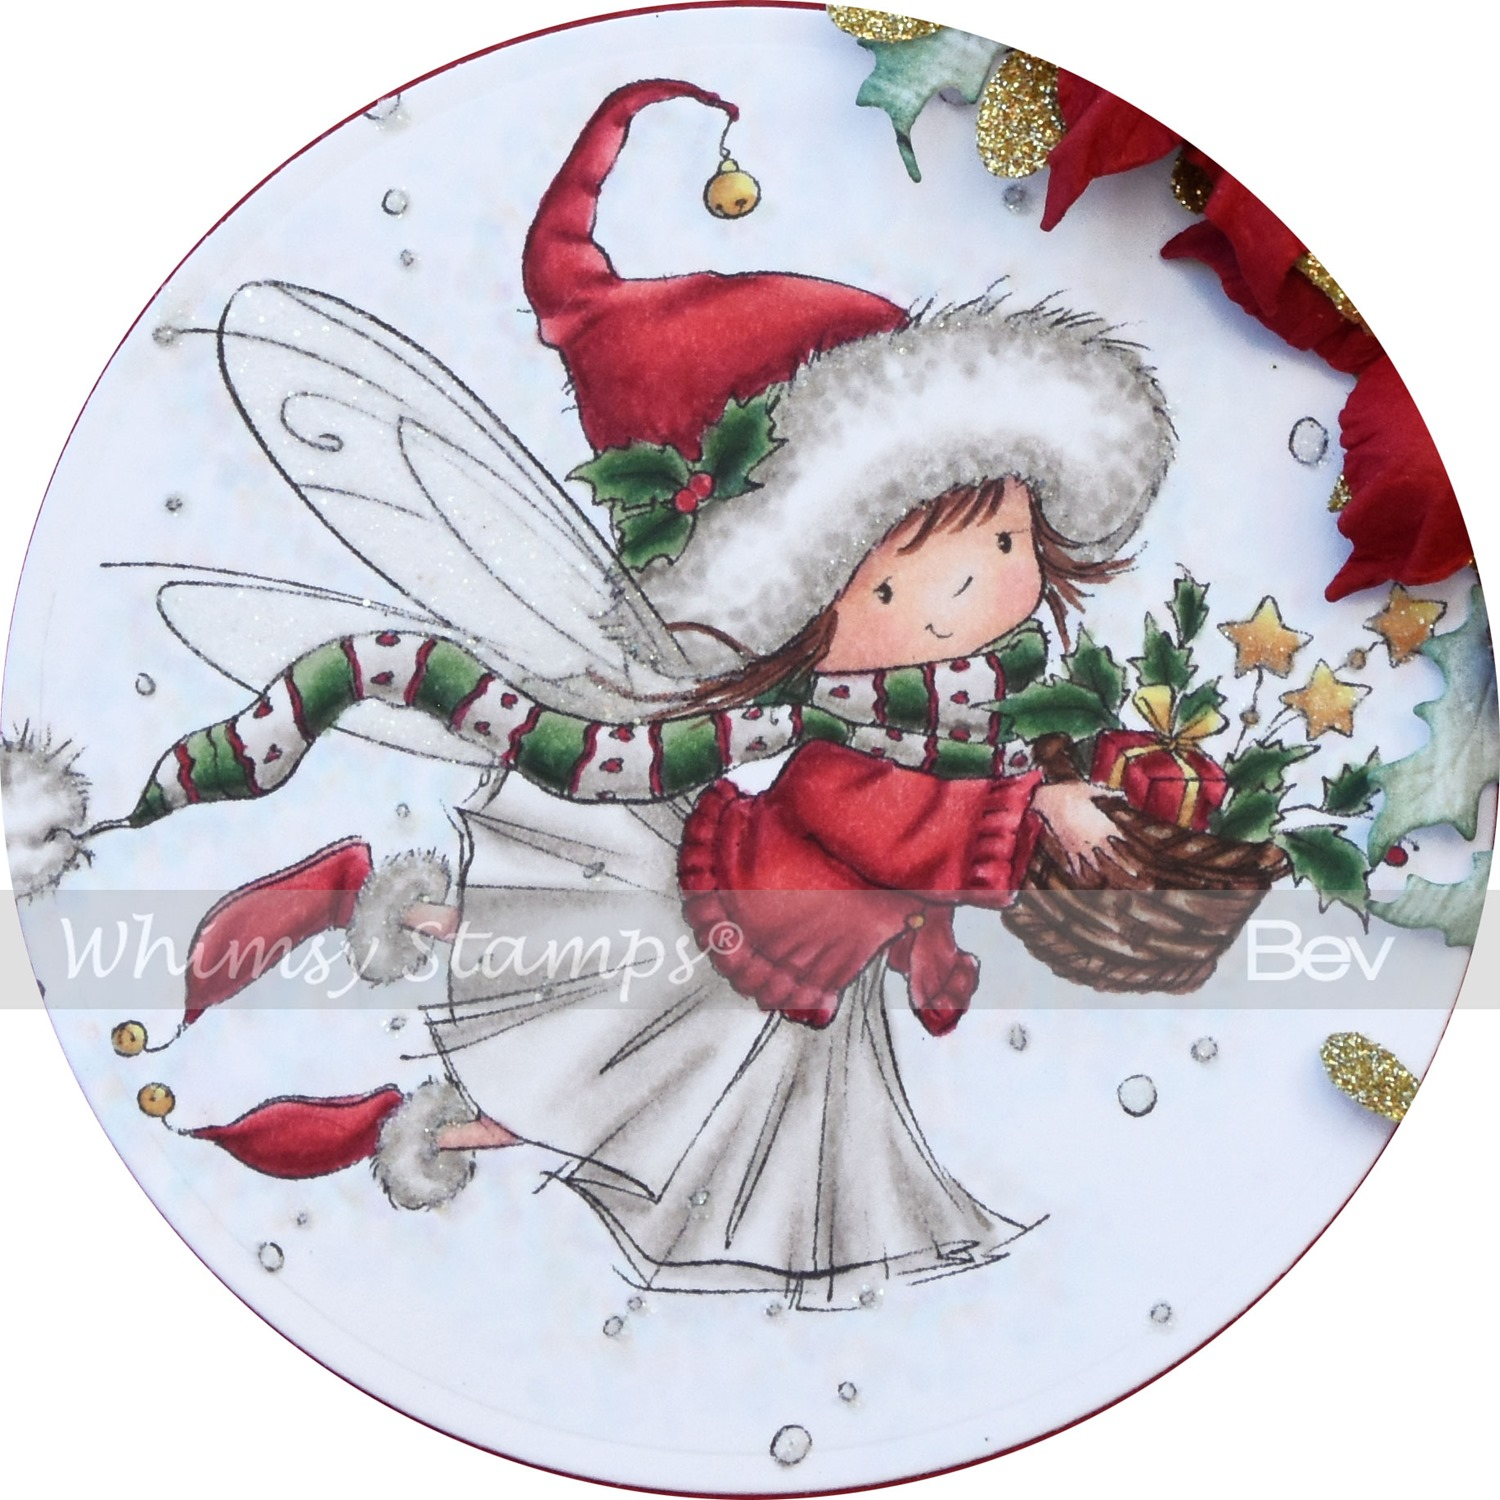 [bev-rochester-whimsy-stamps-merry-wishes1%5B2%5D]